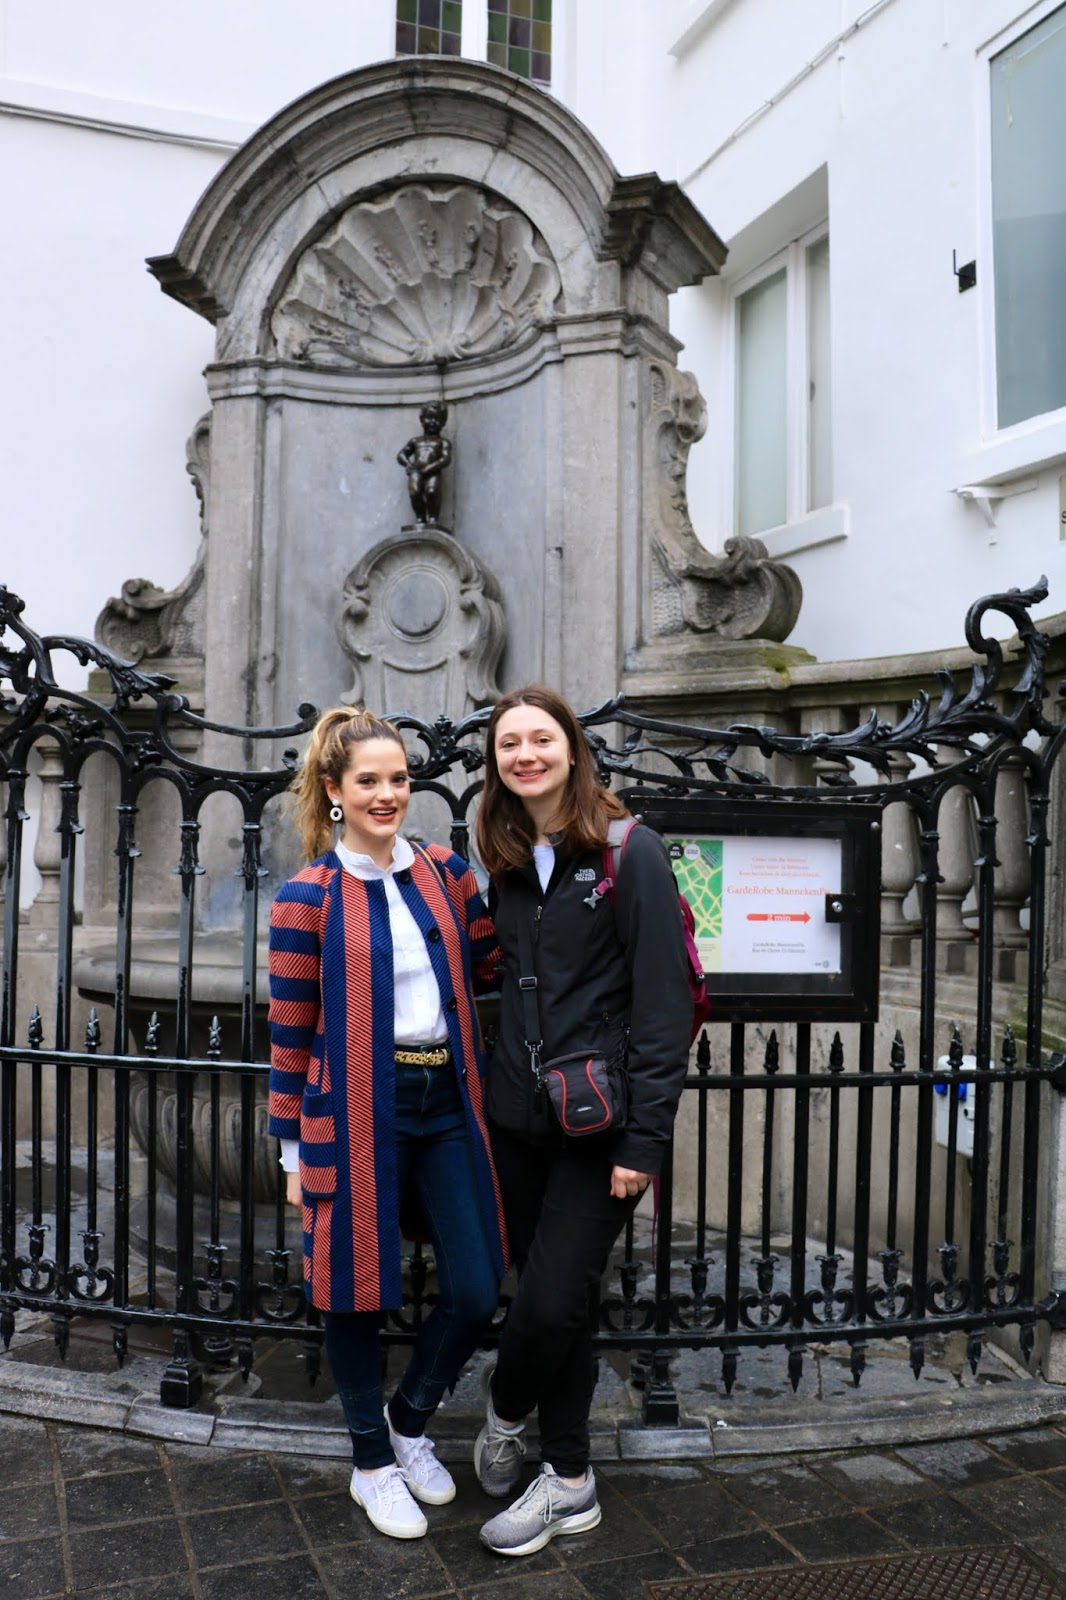 Fashion blogger Kathleen Harper posing in front of the Manneken Pis with her sister in Brussels, Belgium